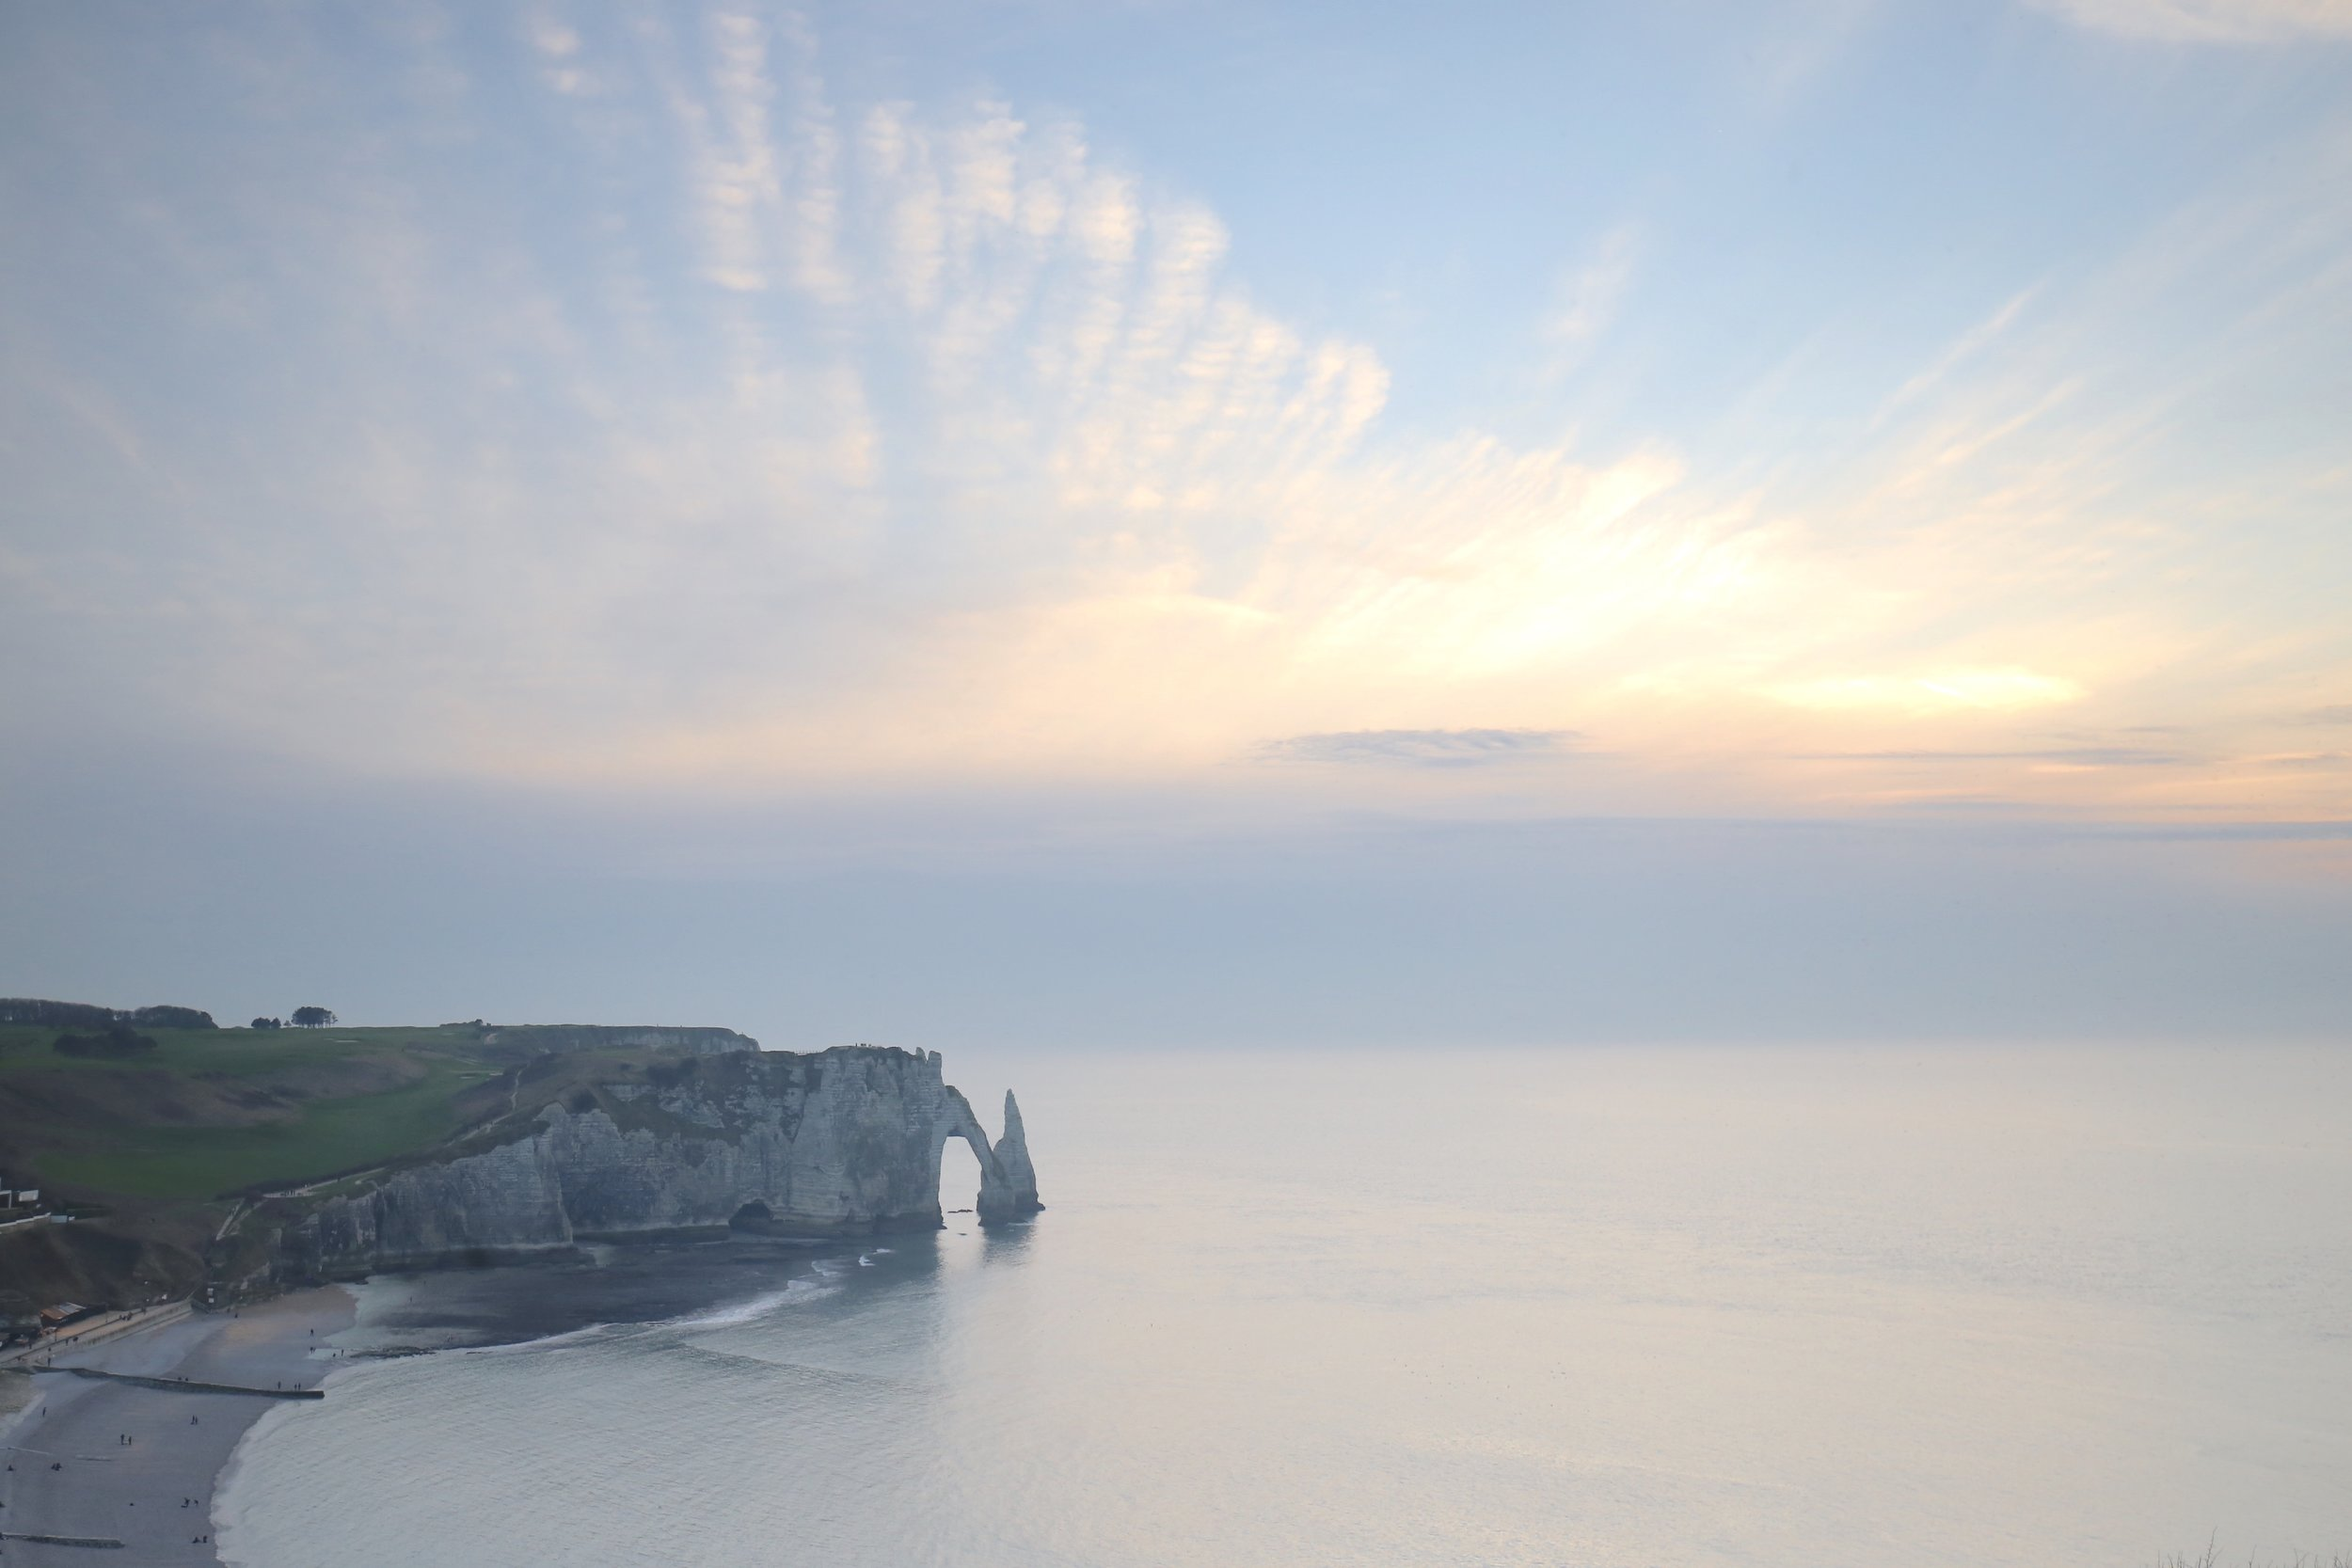 Sunset over the cliffs of Etretat, France - like a painting by Monet.